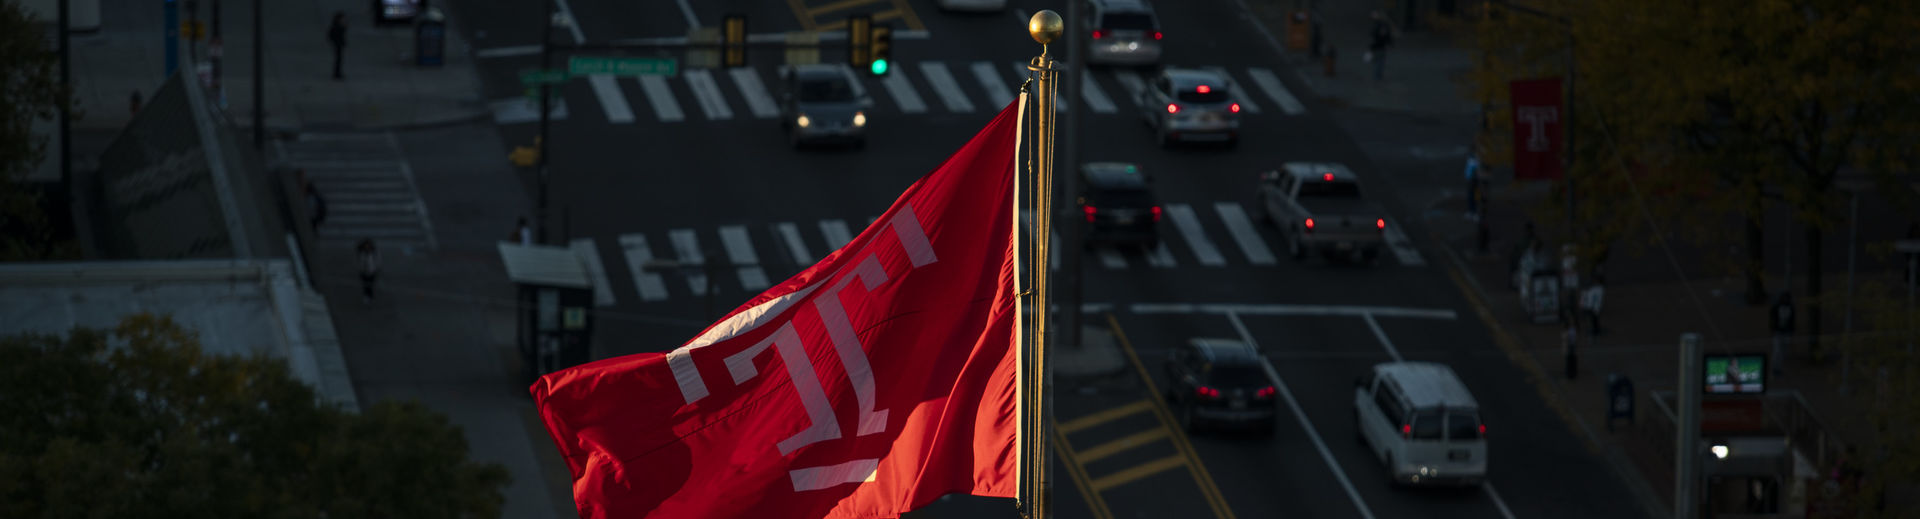 The cherry red Temple T flag flies above North Broad Street